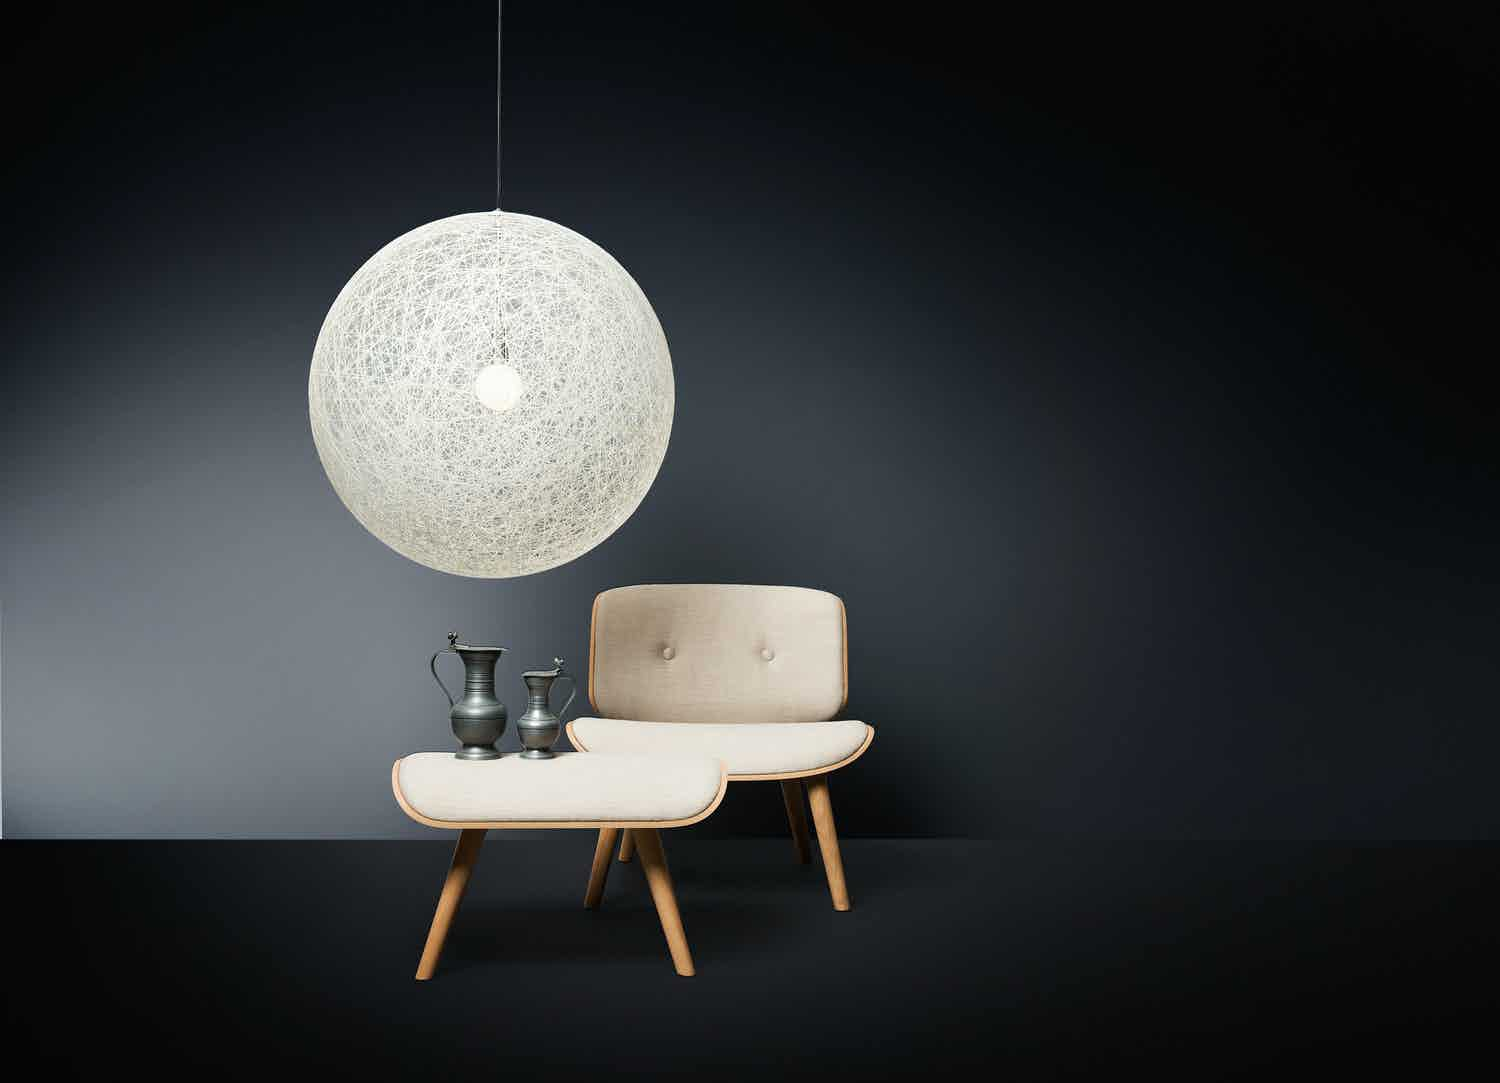 The Random Light By Moooi At Haute Living